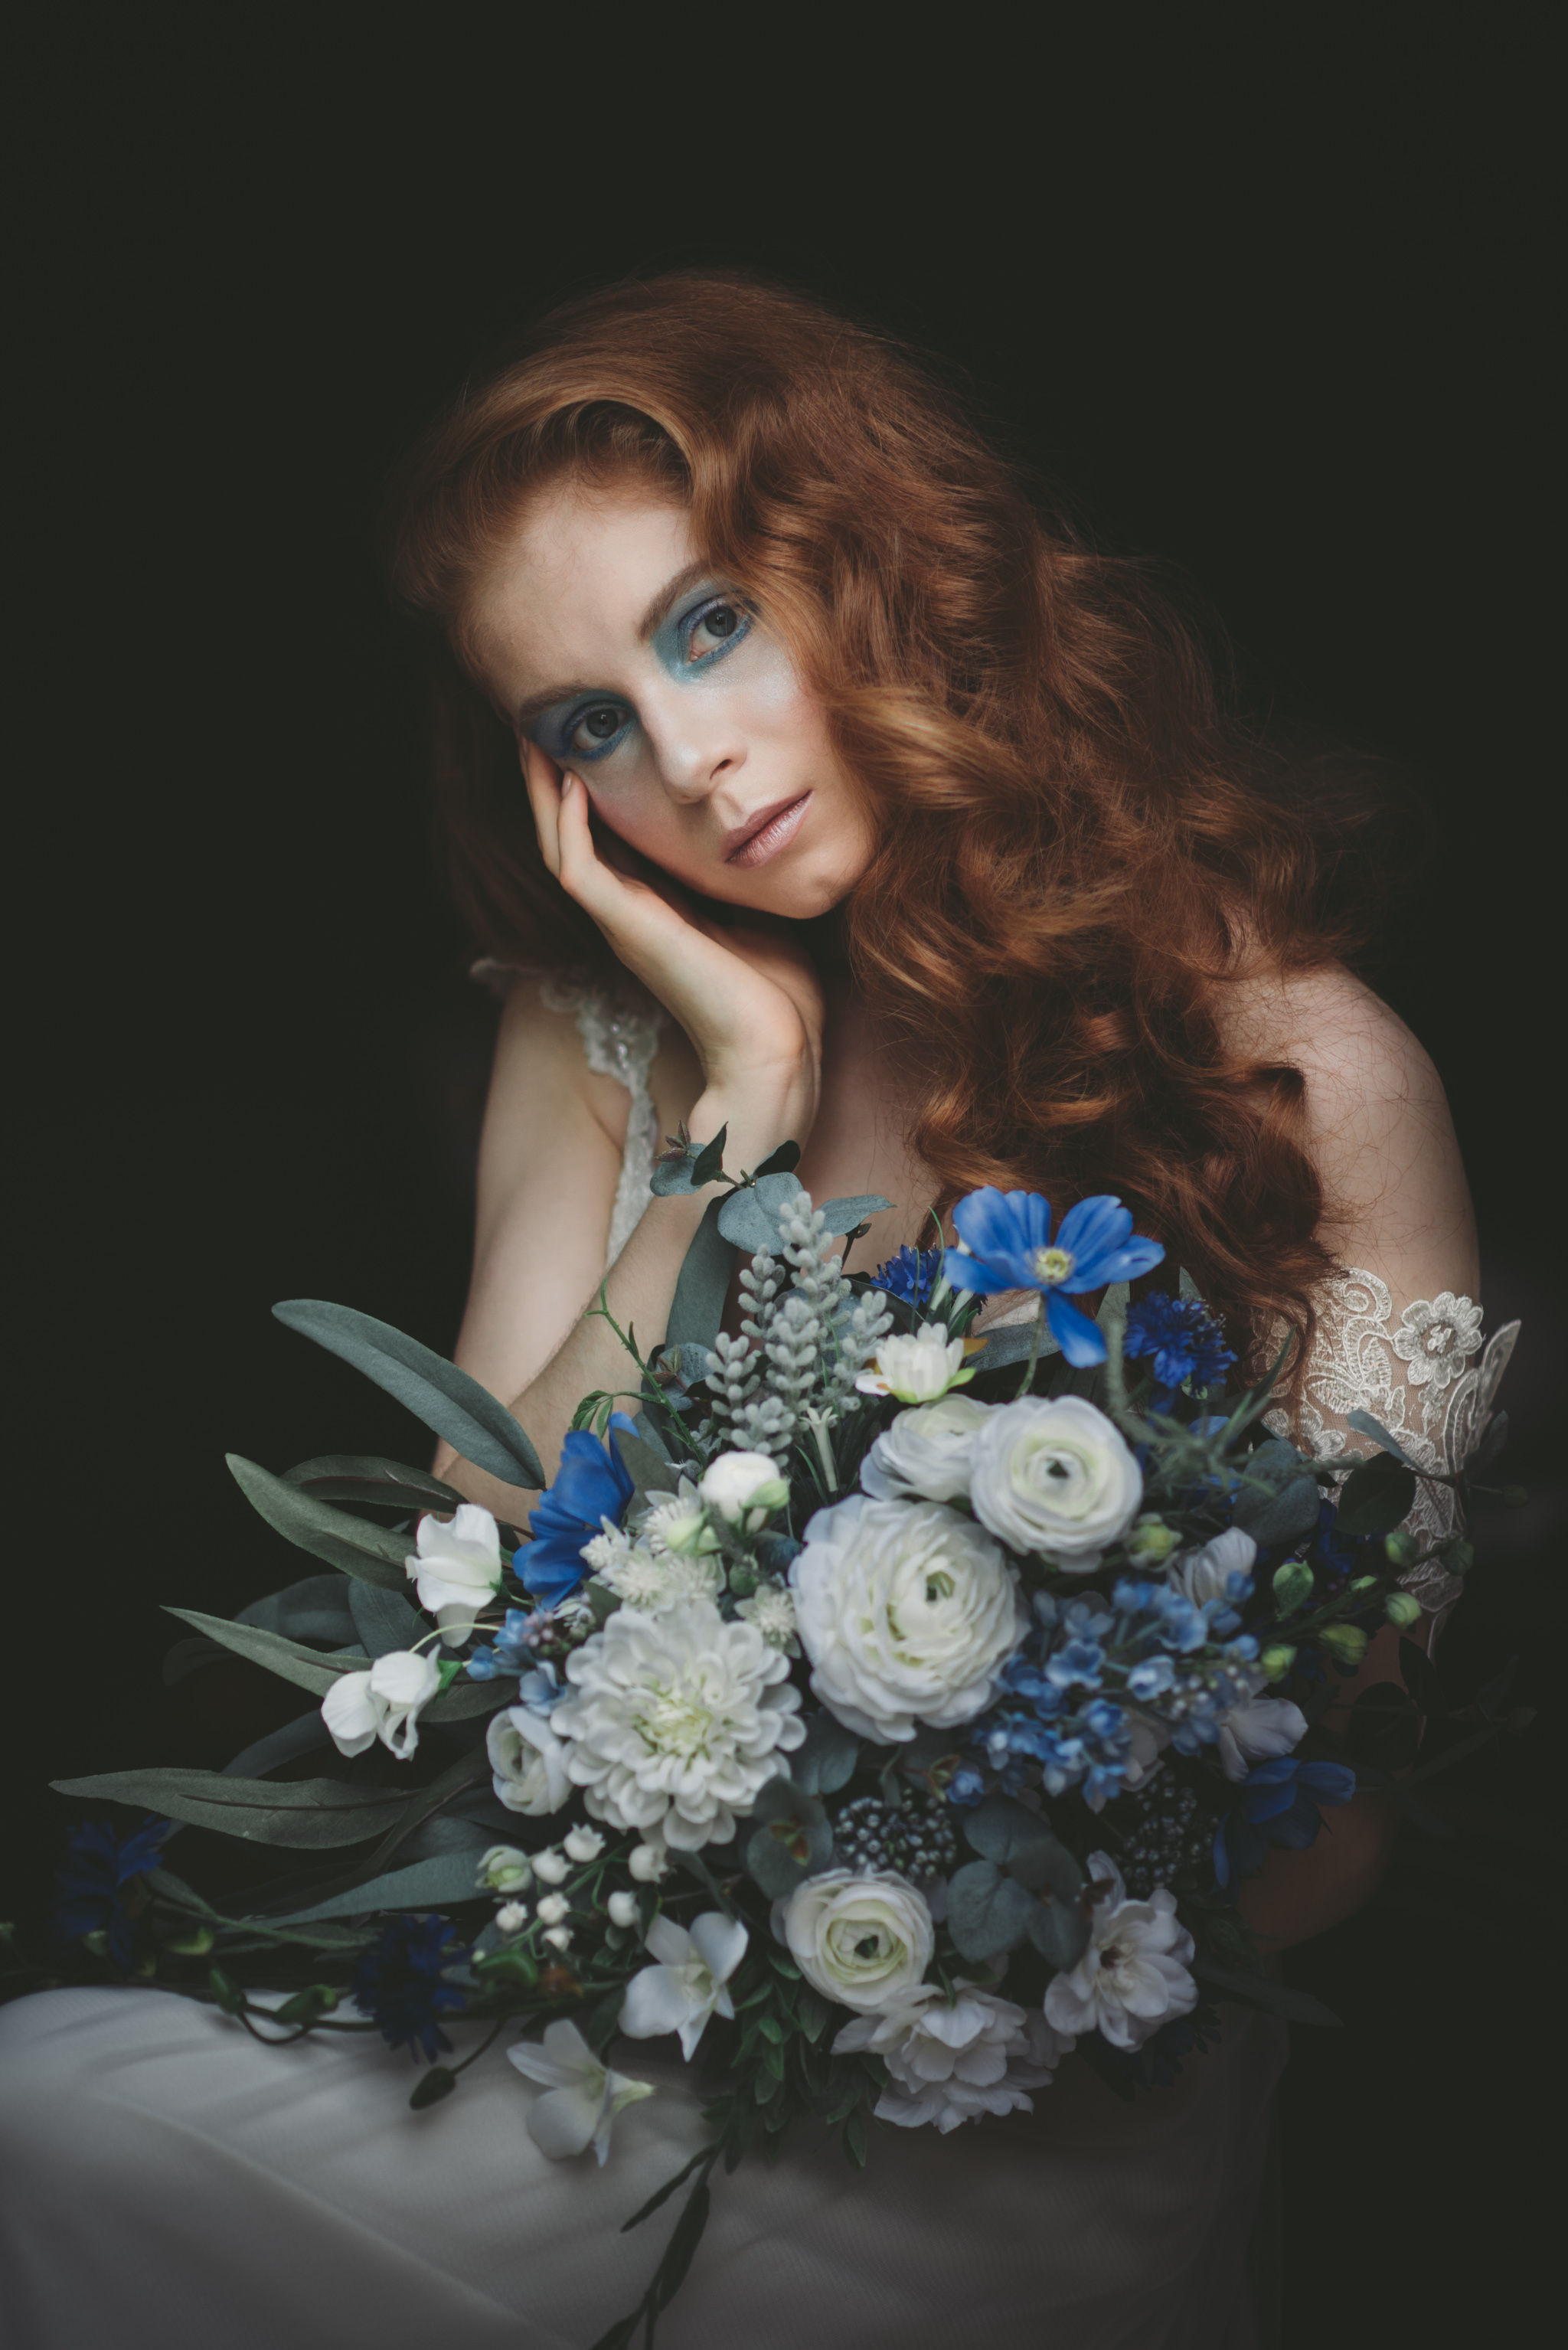 LOVELENSCAPES PHOTOGRAPHY X ANNA CAMPBELL BRIDAL X LEMAE MAKEUP ARTISTRY X BLOOMING LOVELY BOUQUETS X ERIN LIGHTFOOT X LITTLE WHITE COUTURE • 3.jpg